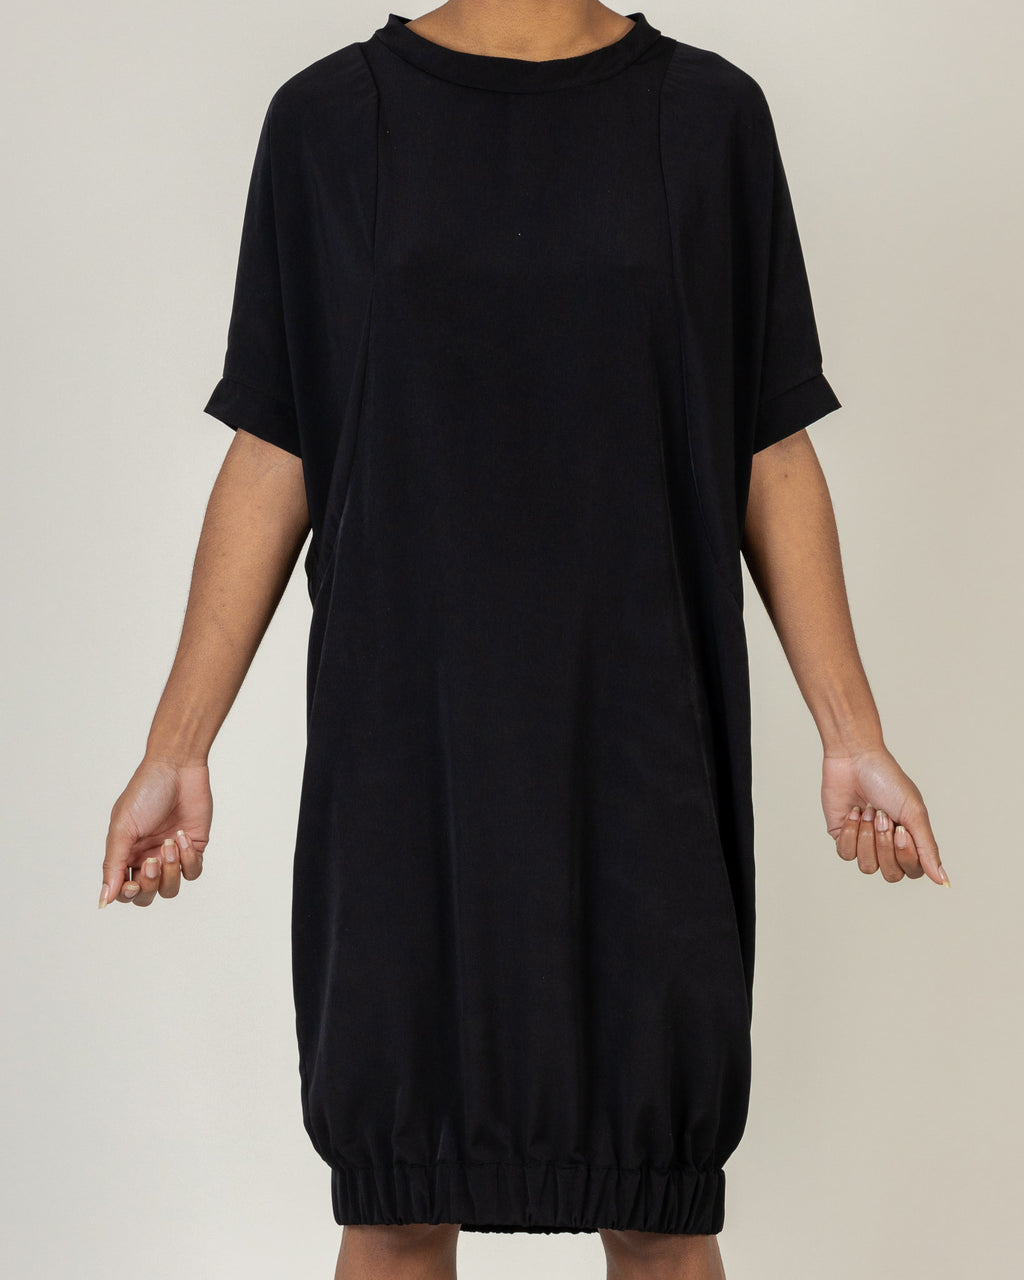 Elasticated Hem Dress - B3U